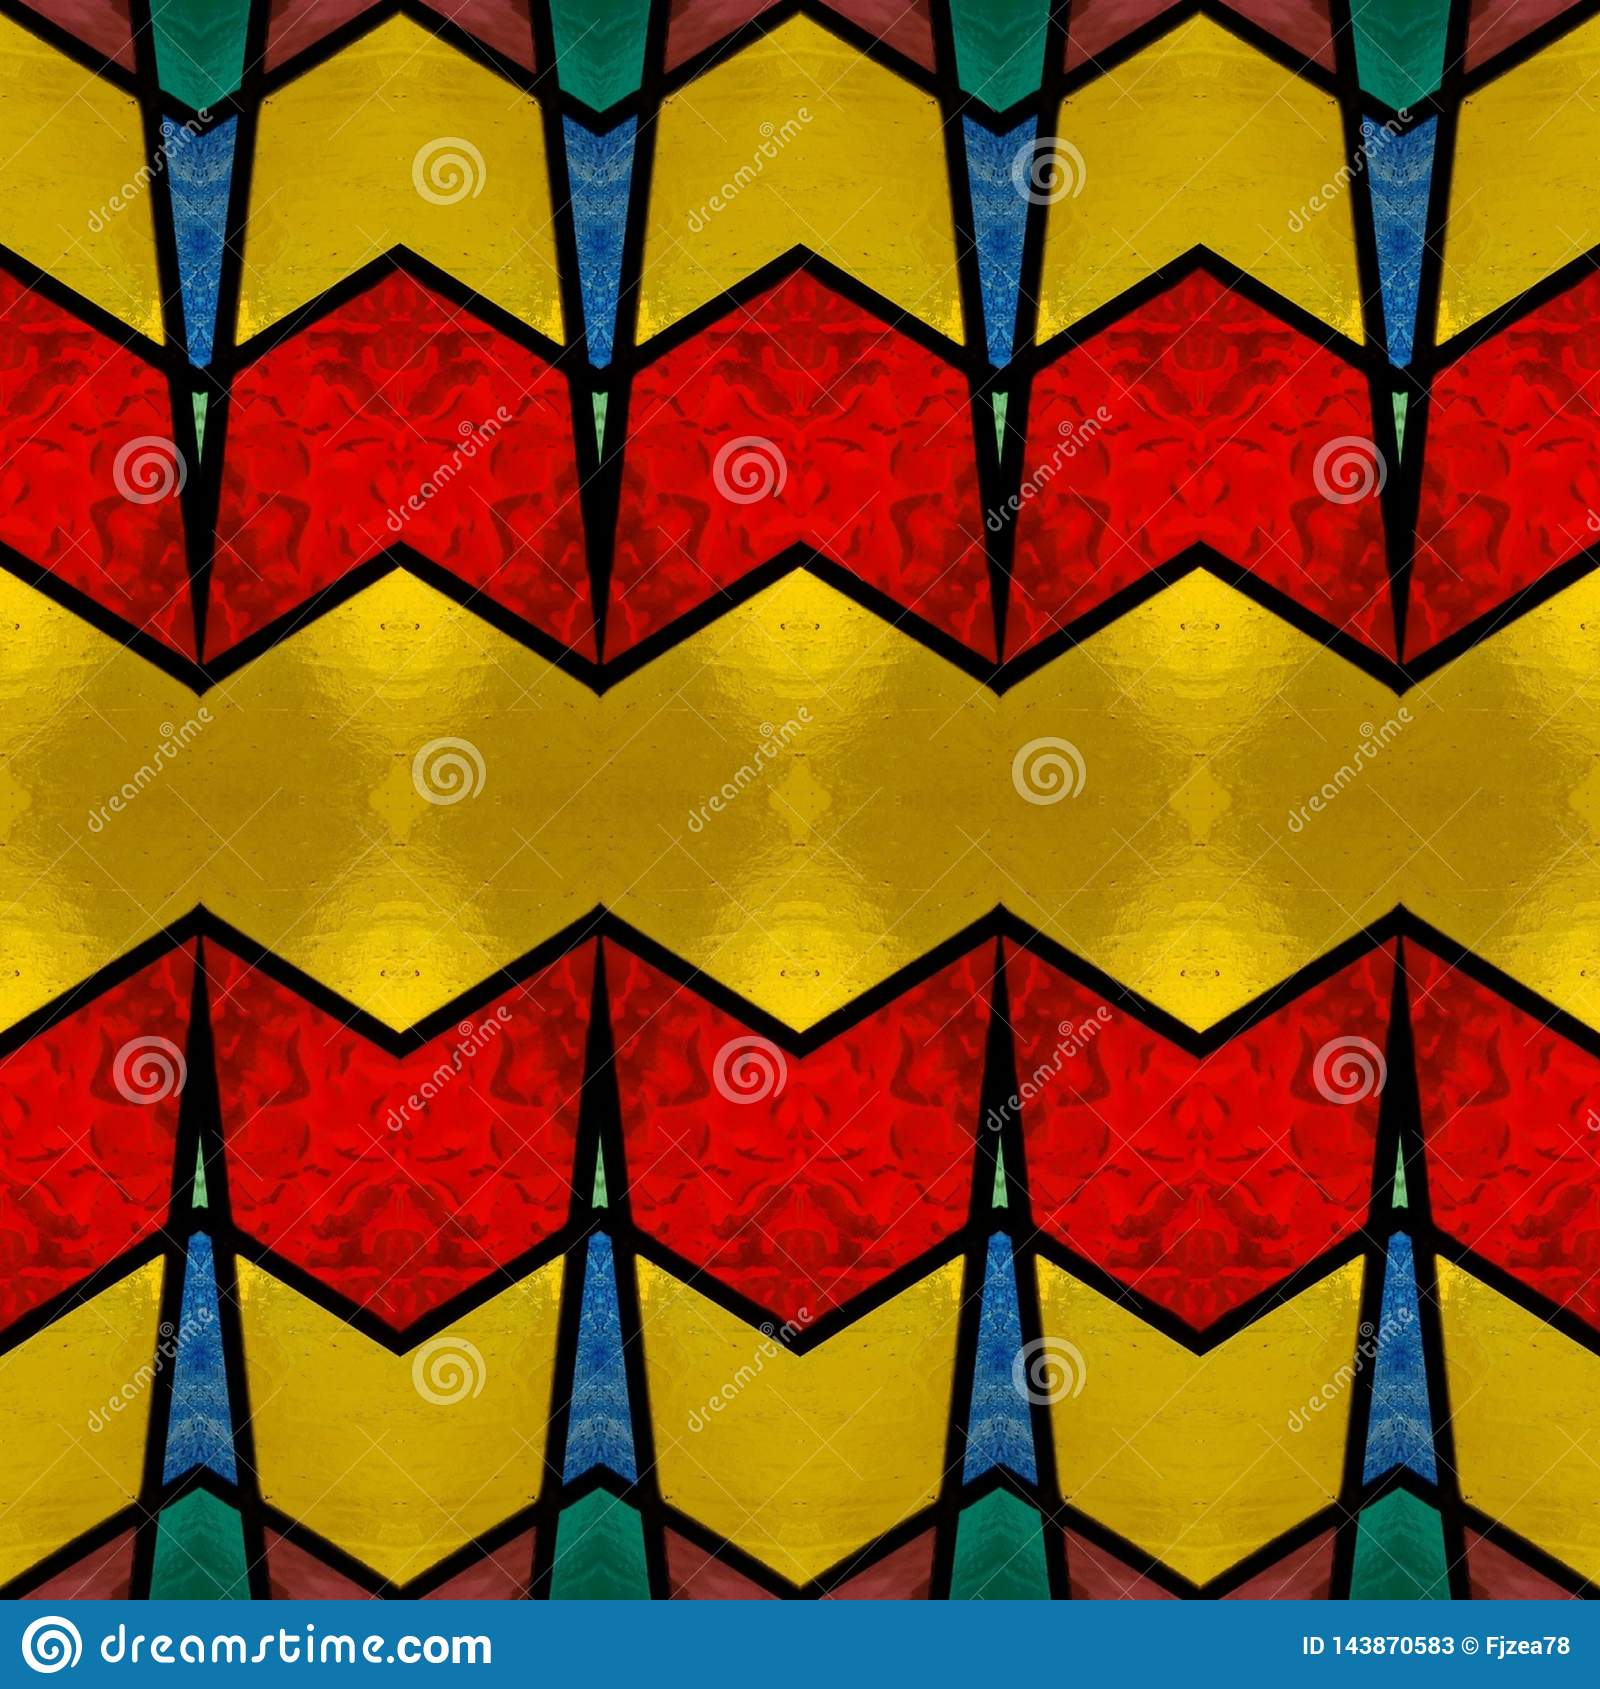 abstract design with stained glass in various colors, background and texture